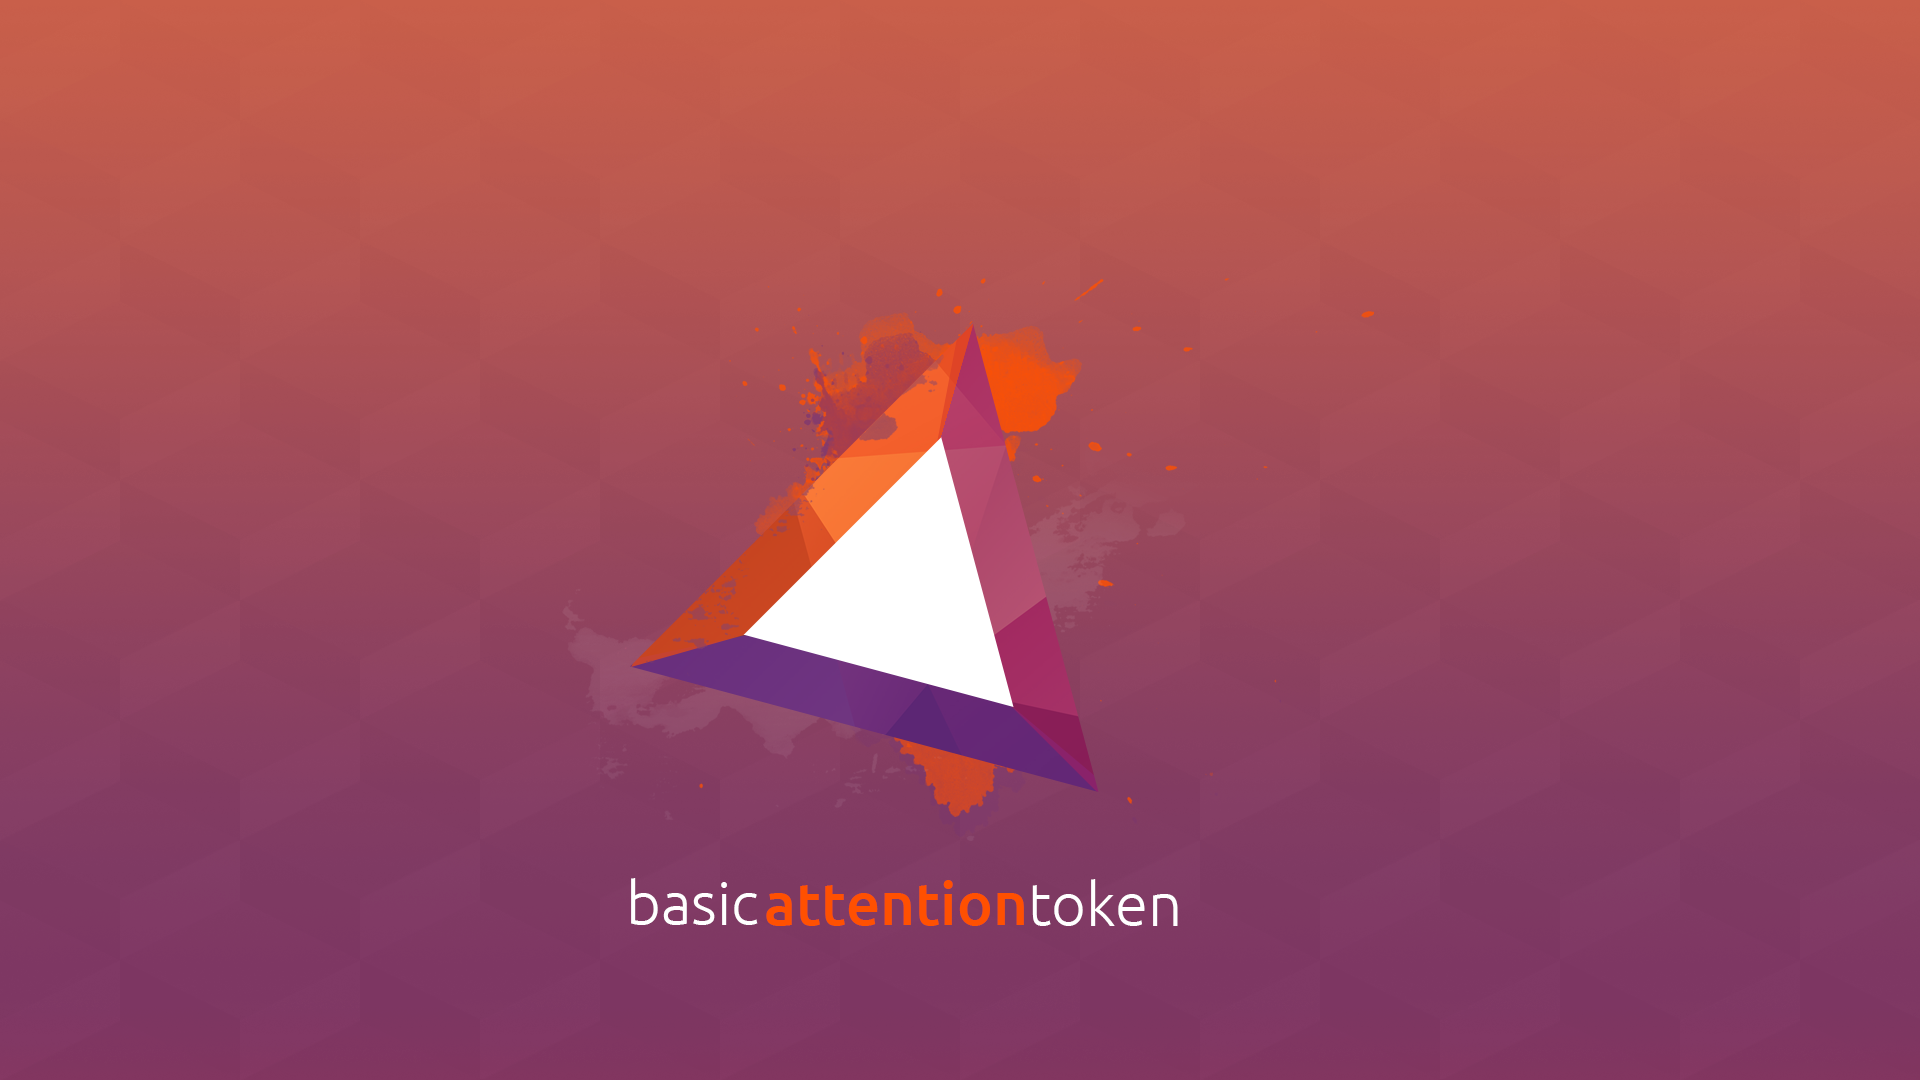 acheter basic attention token avis